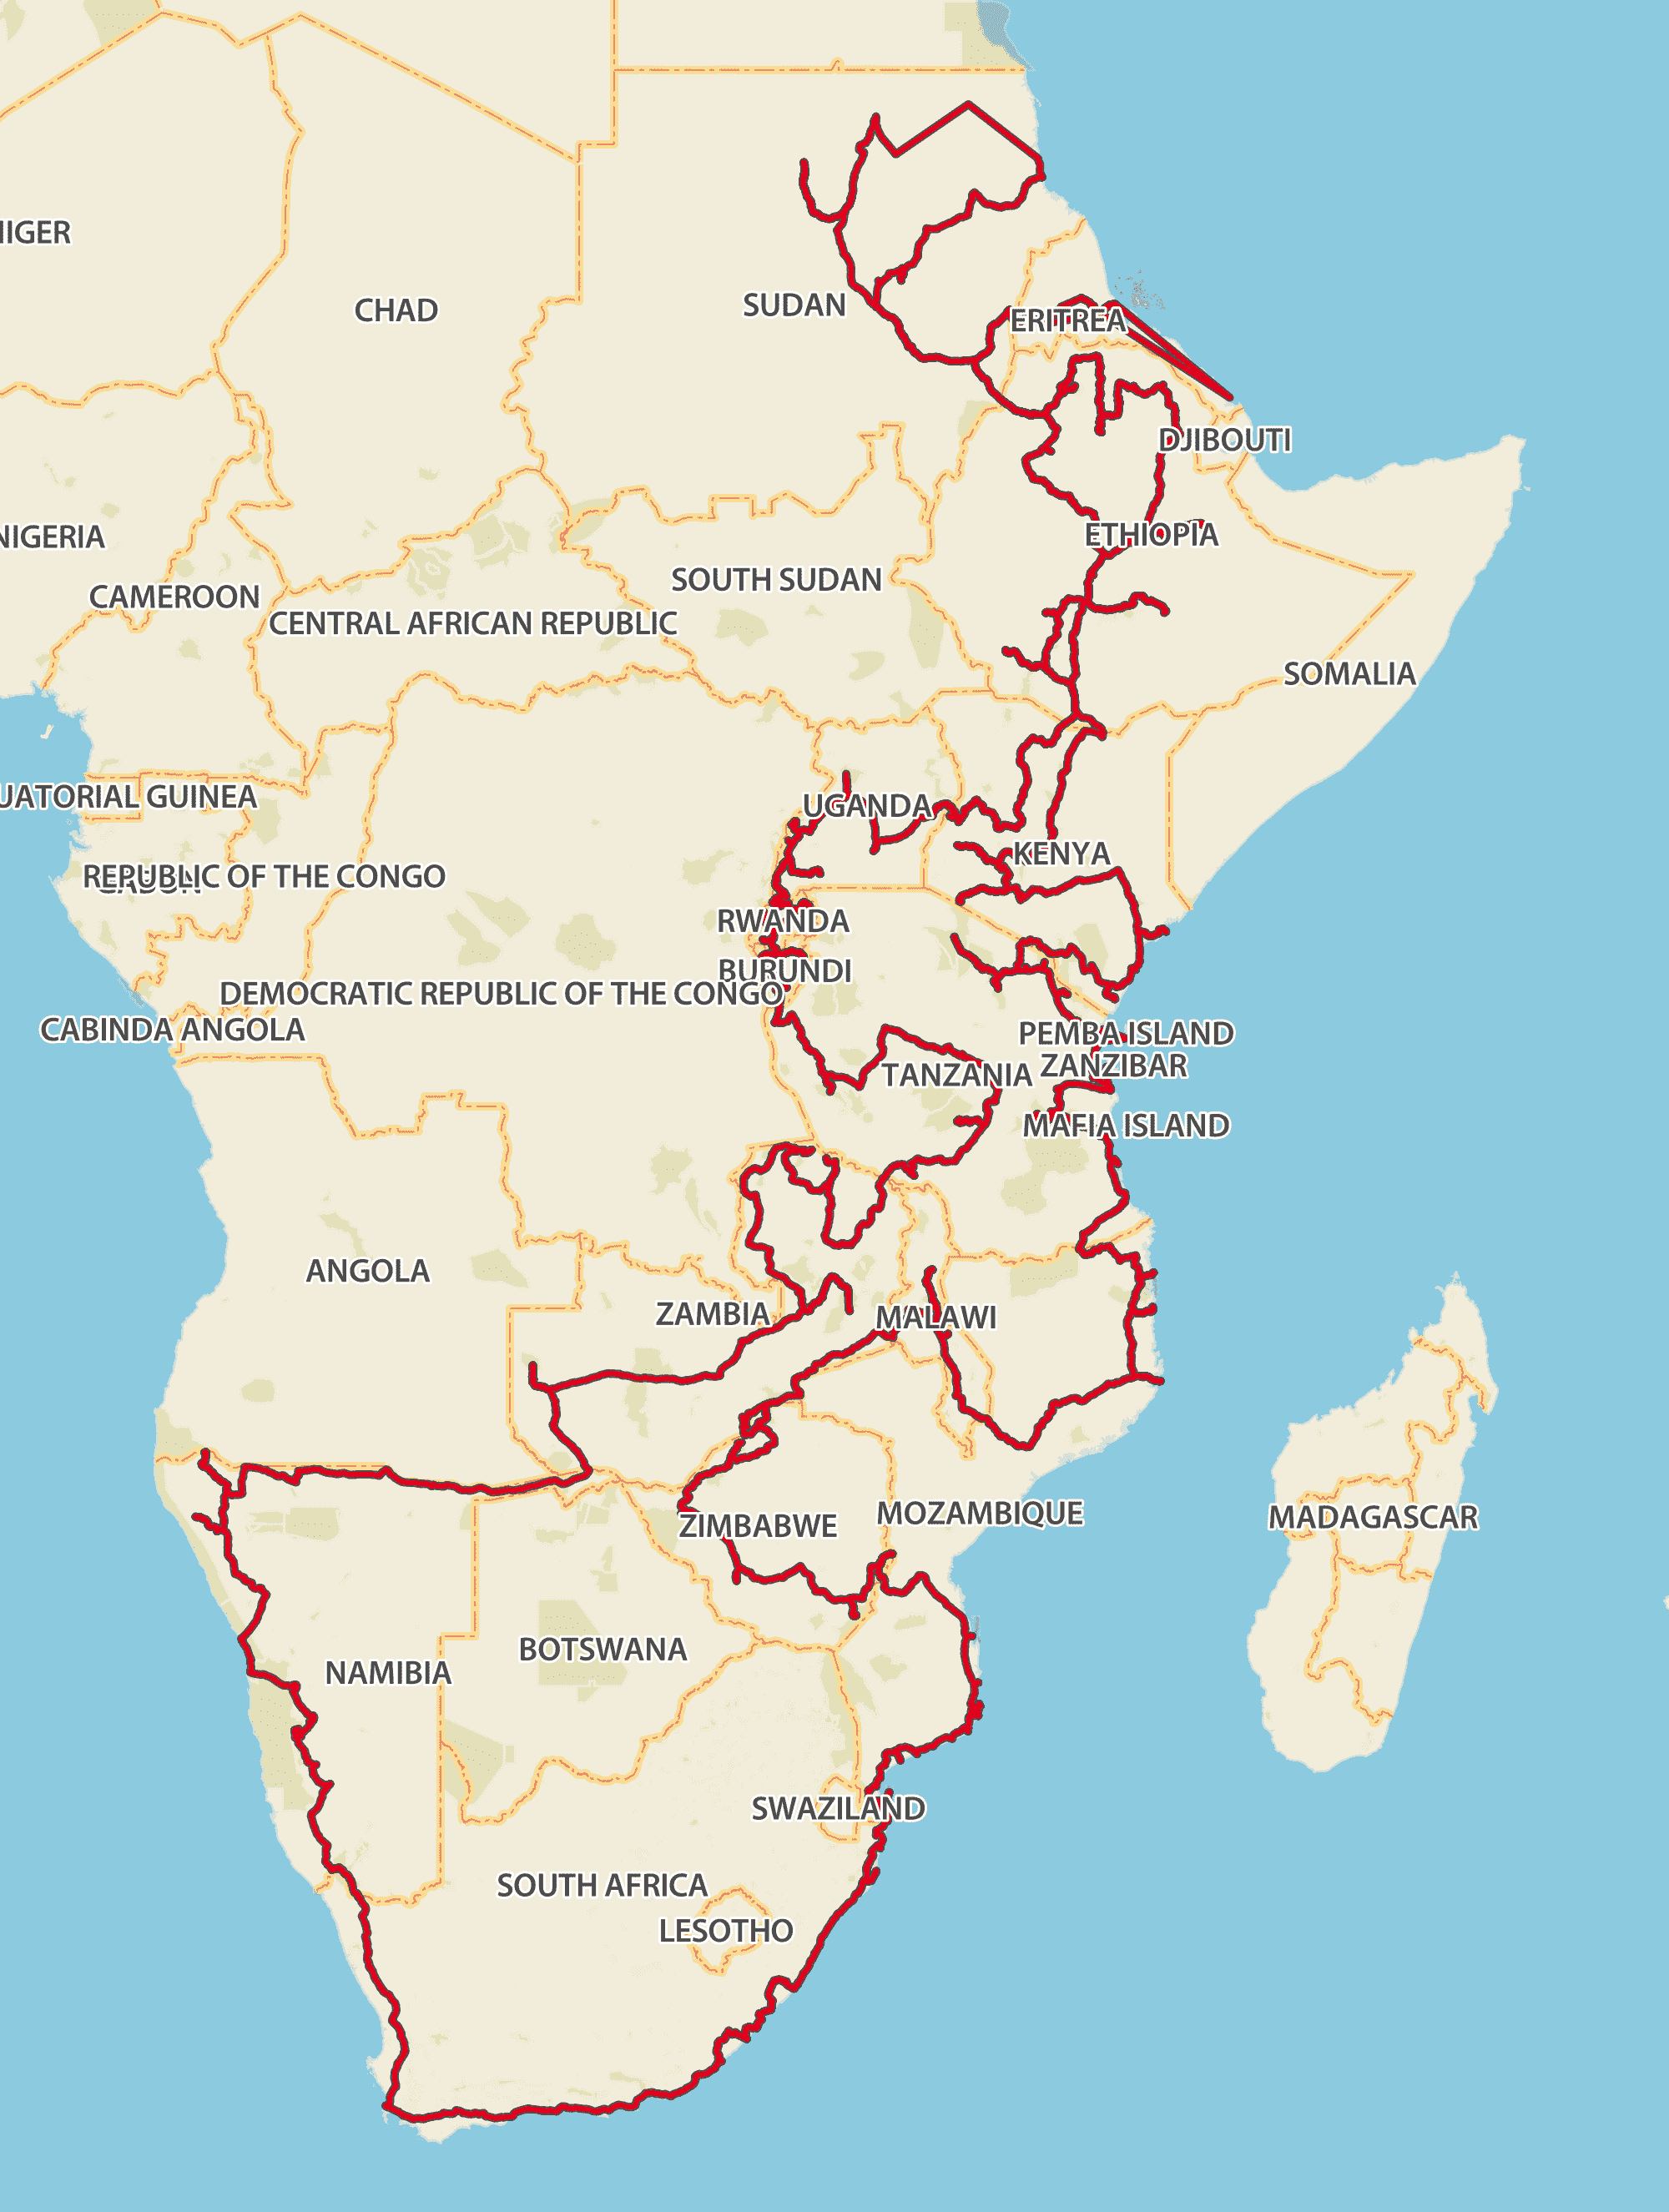 Our planned route to Eritrea and back are flexible.